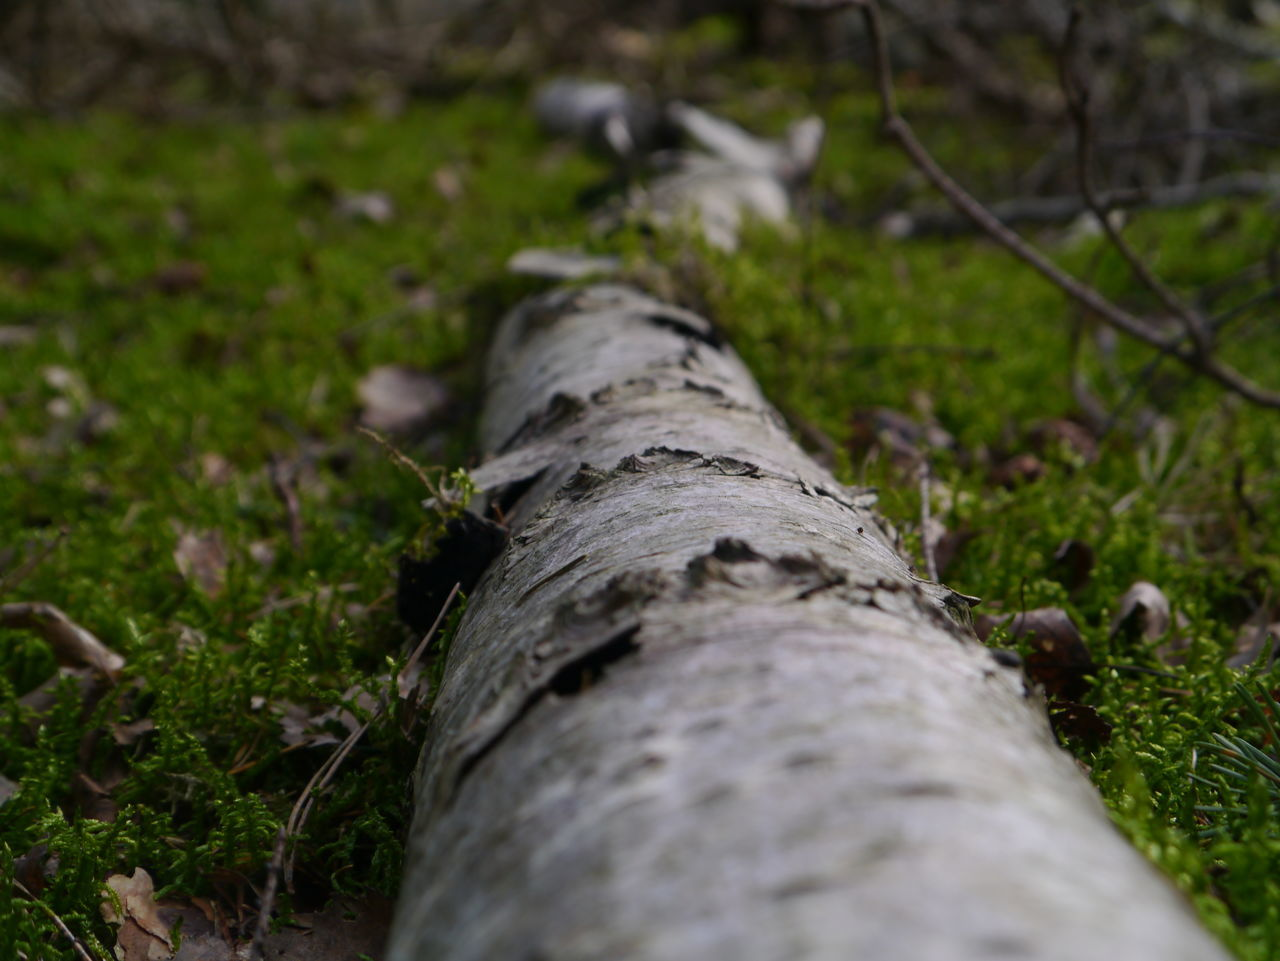 Close-up Day Deforestation Fallen Tree Forest Grass Landscape Log Nature No People Outdoors Textured  Timber Tree Tree Ring Tree Trunk Wood - Material